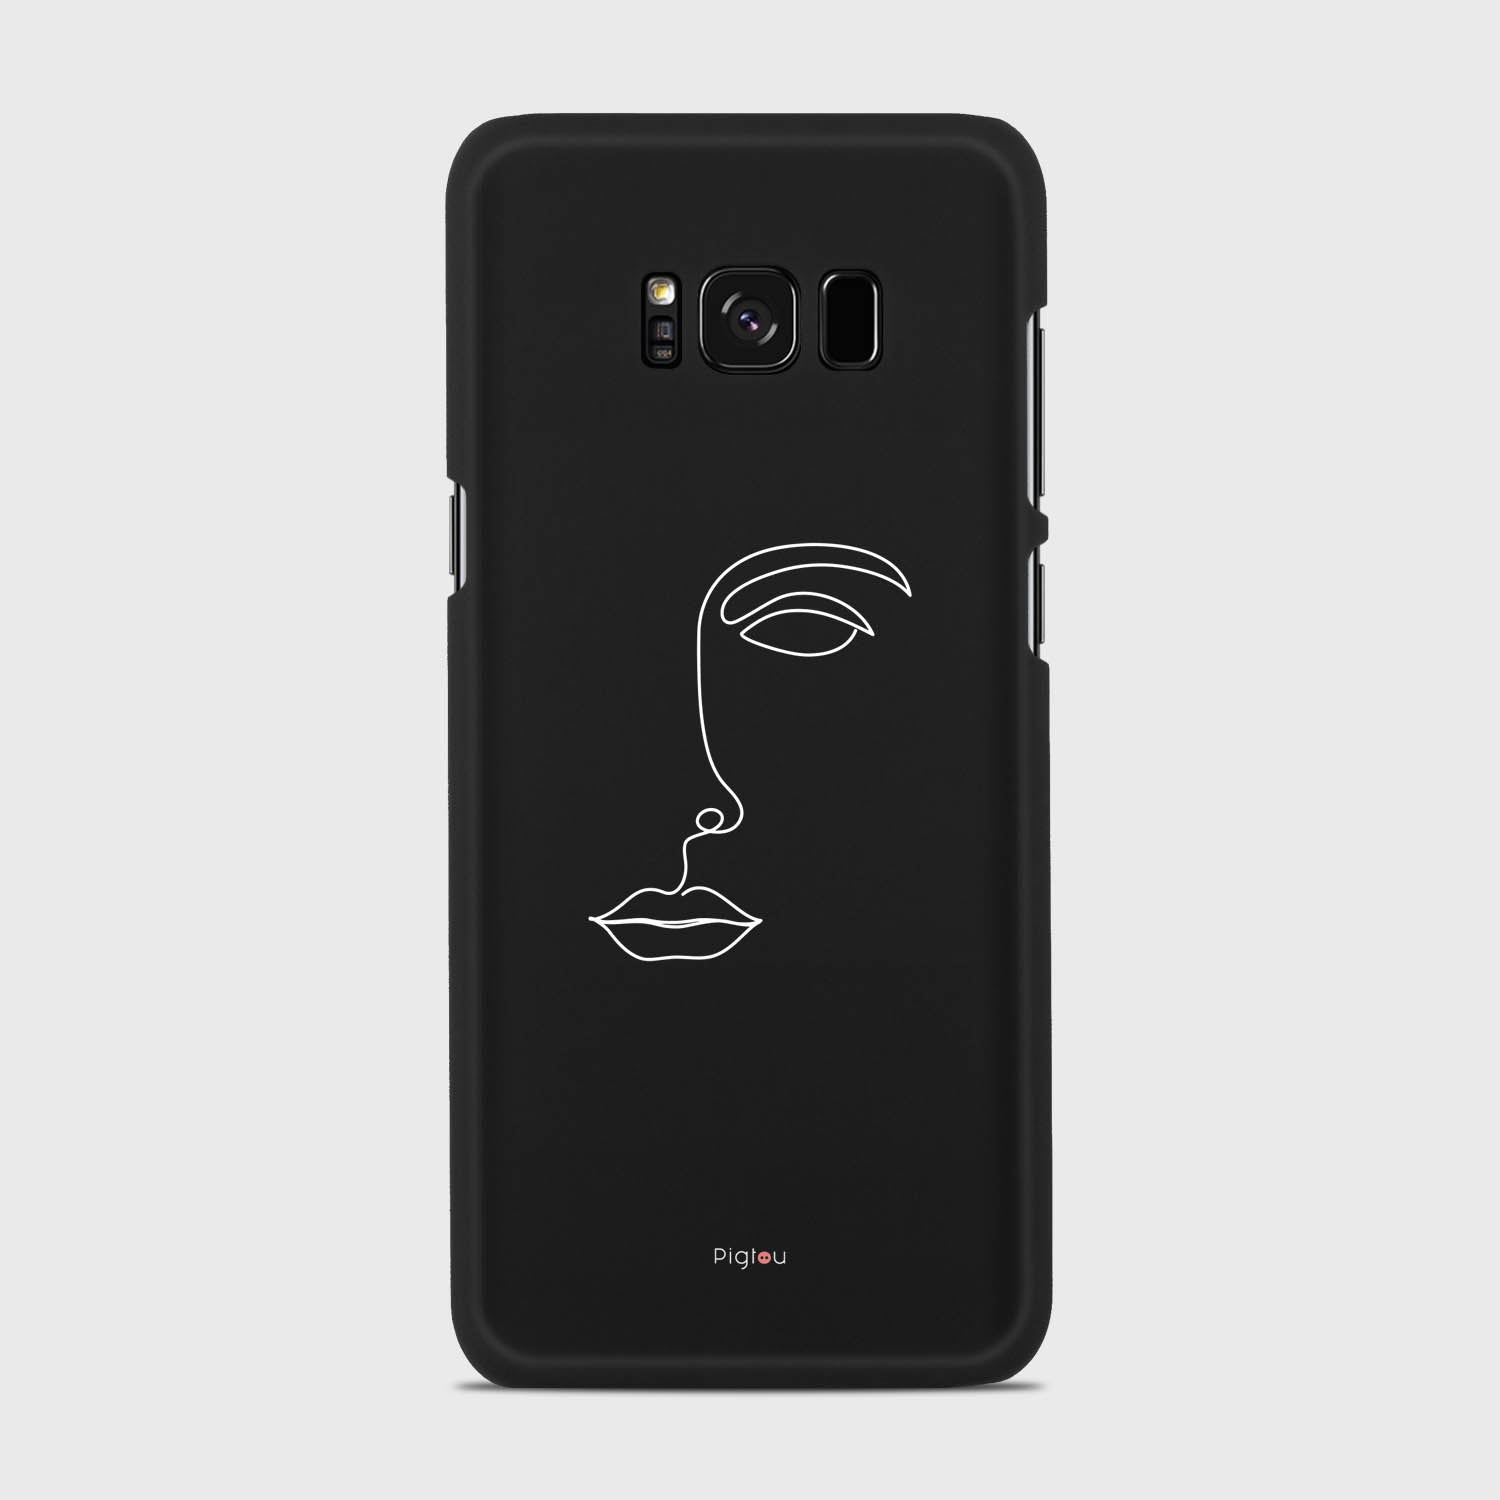 SILHOUETTE FACE Samsung Galaxy S8 Plus cases | Pigtou